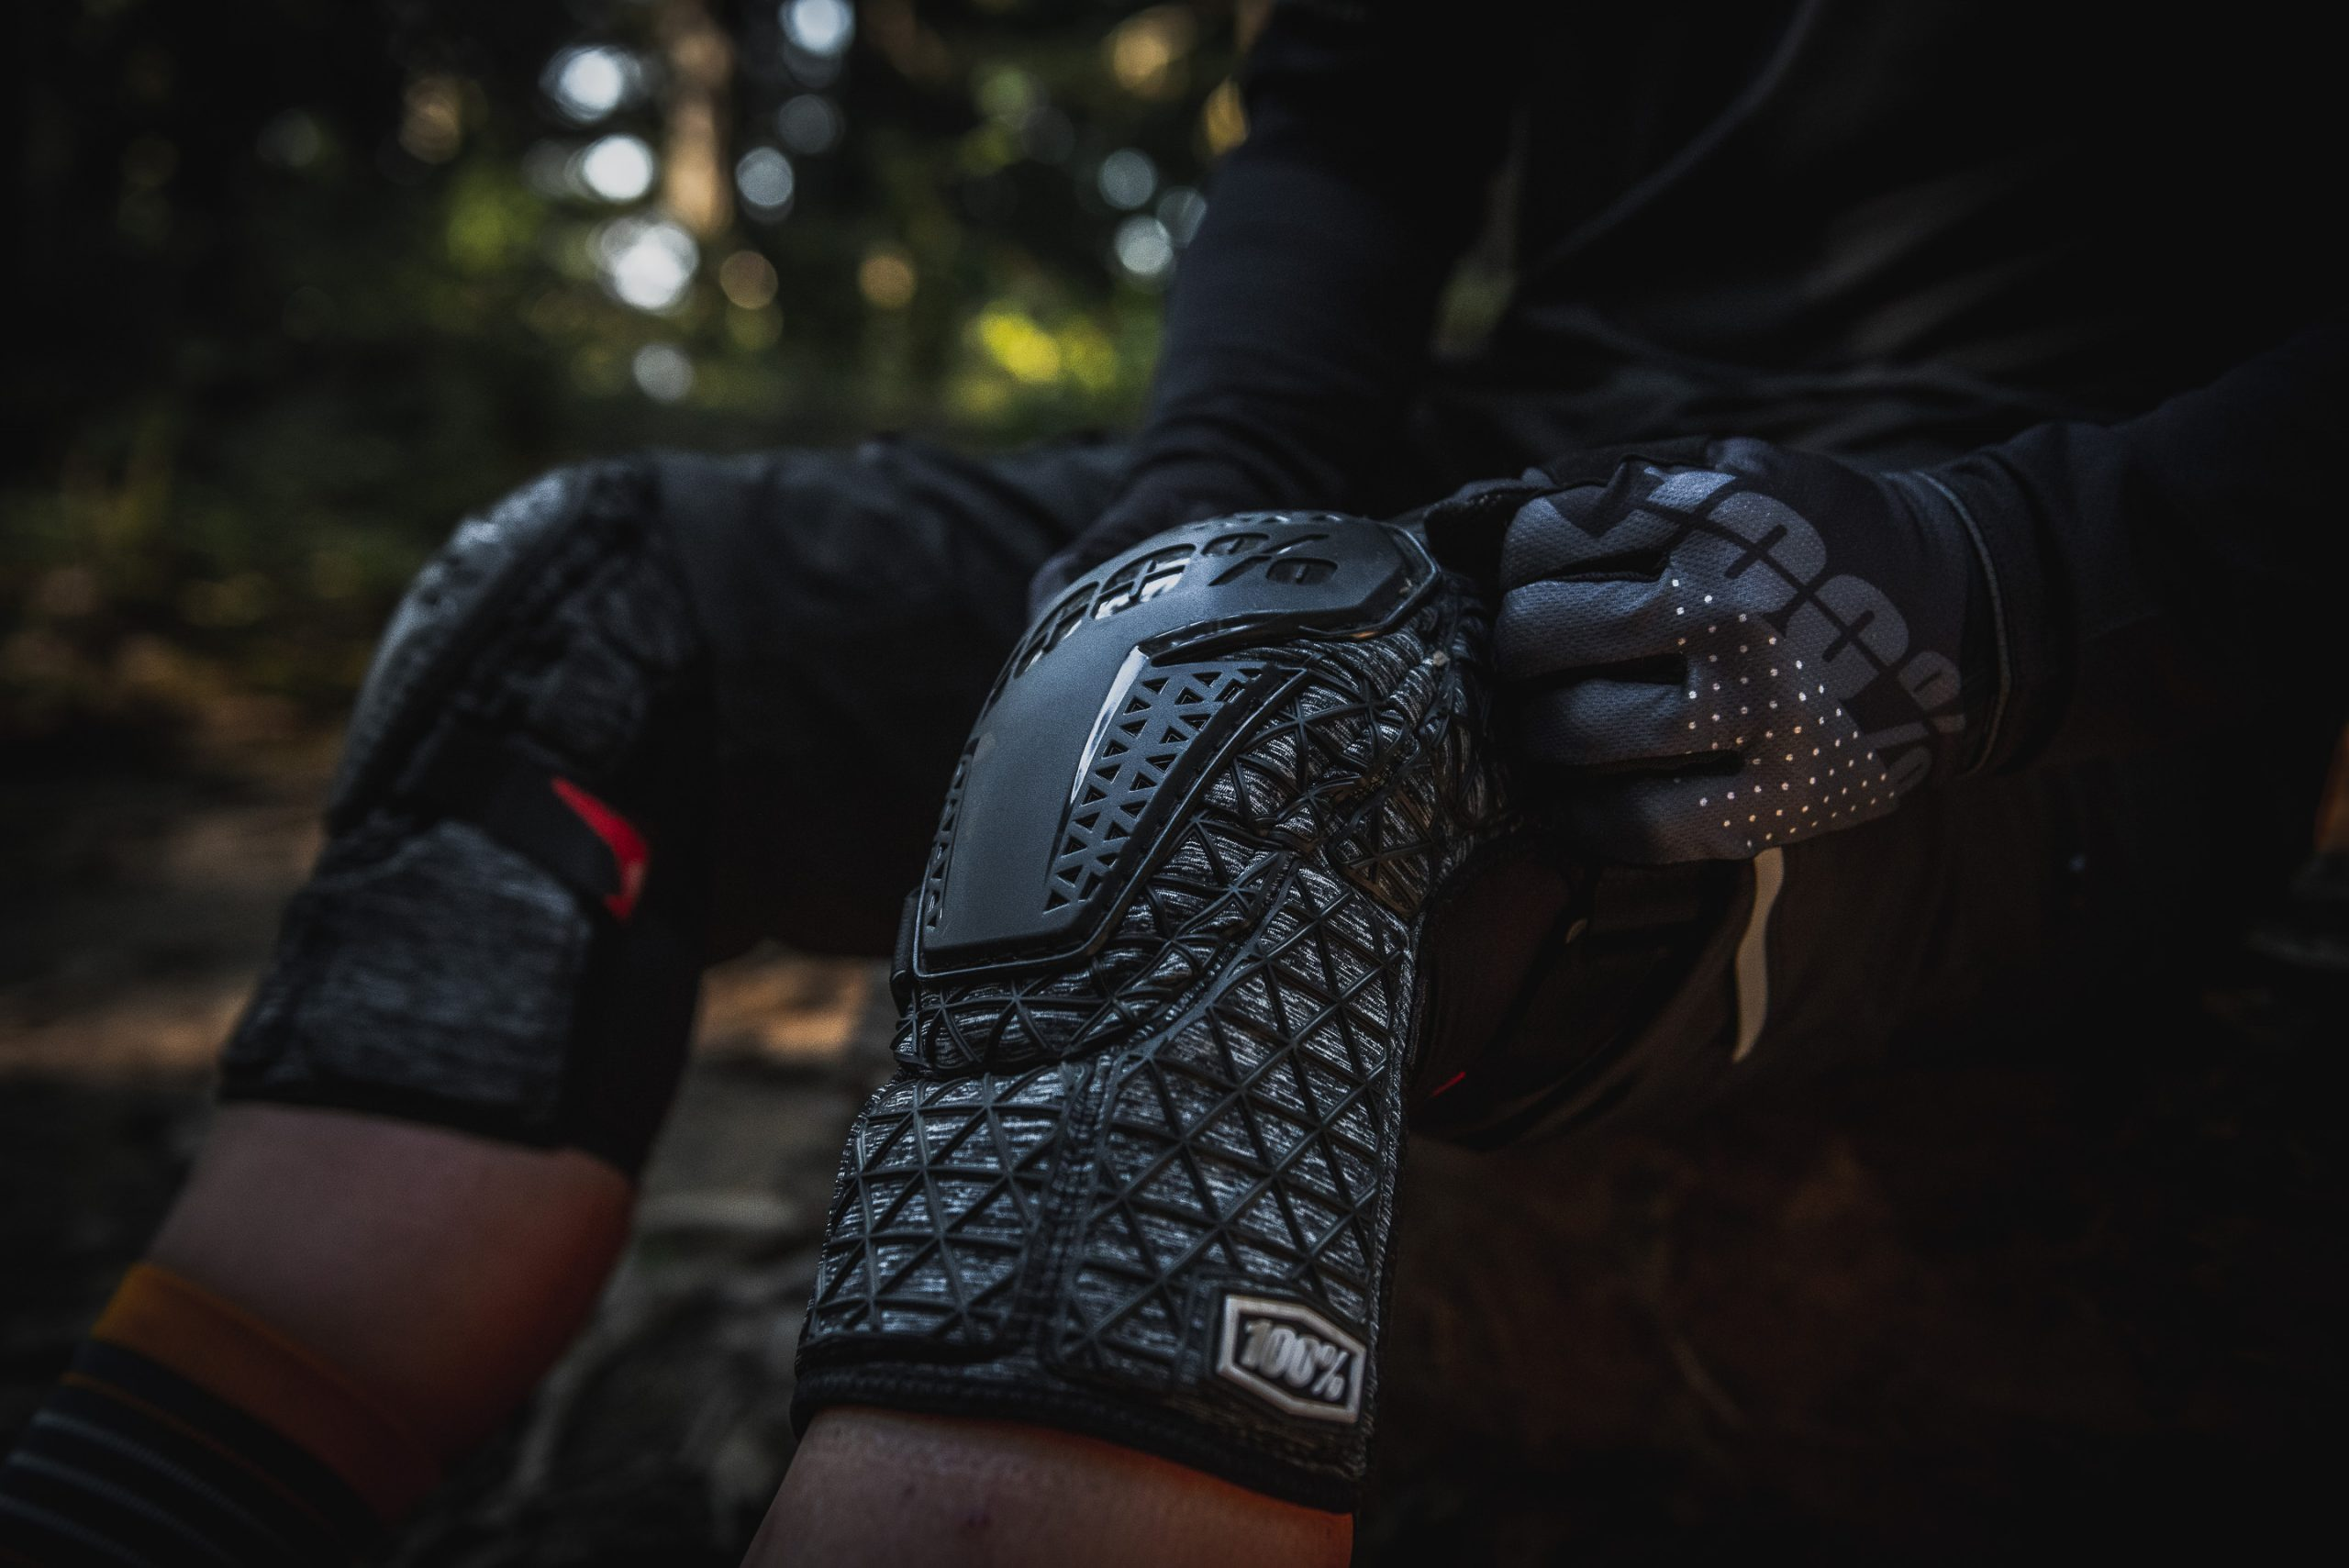 , 100% Introduces Next Evolutions of Bike Protection